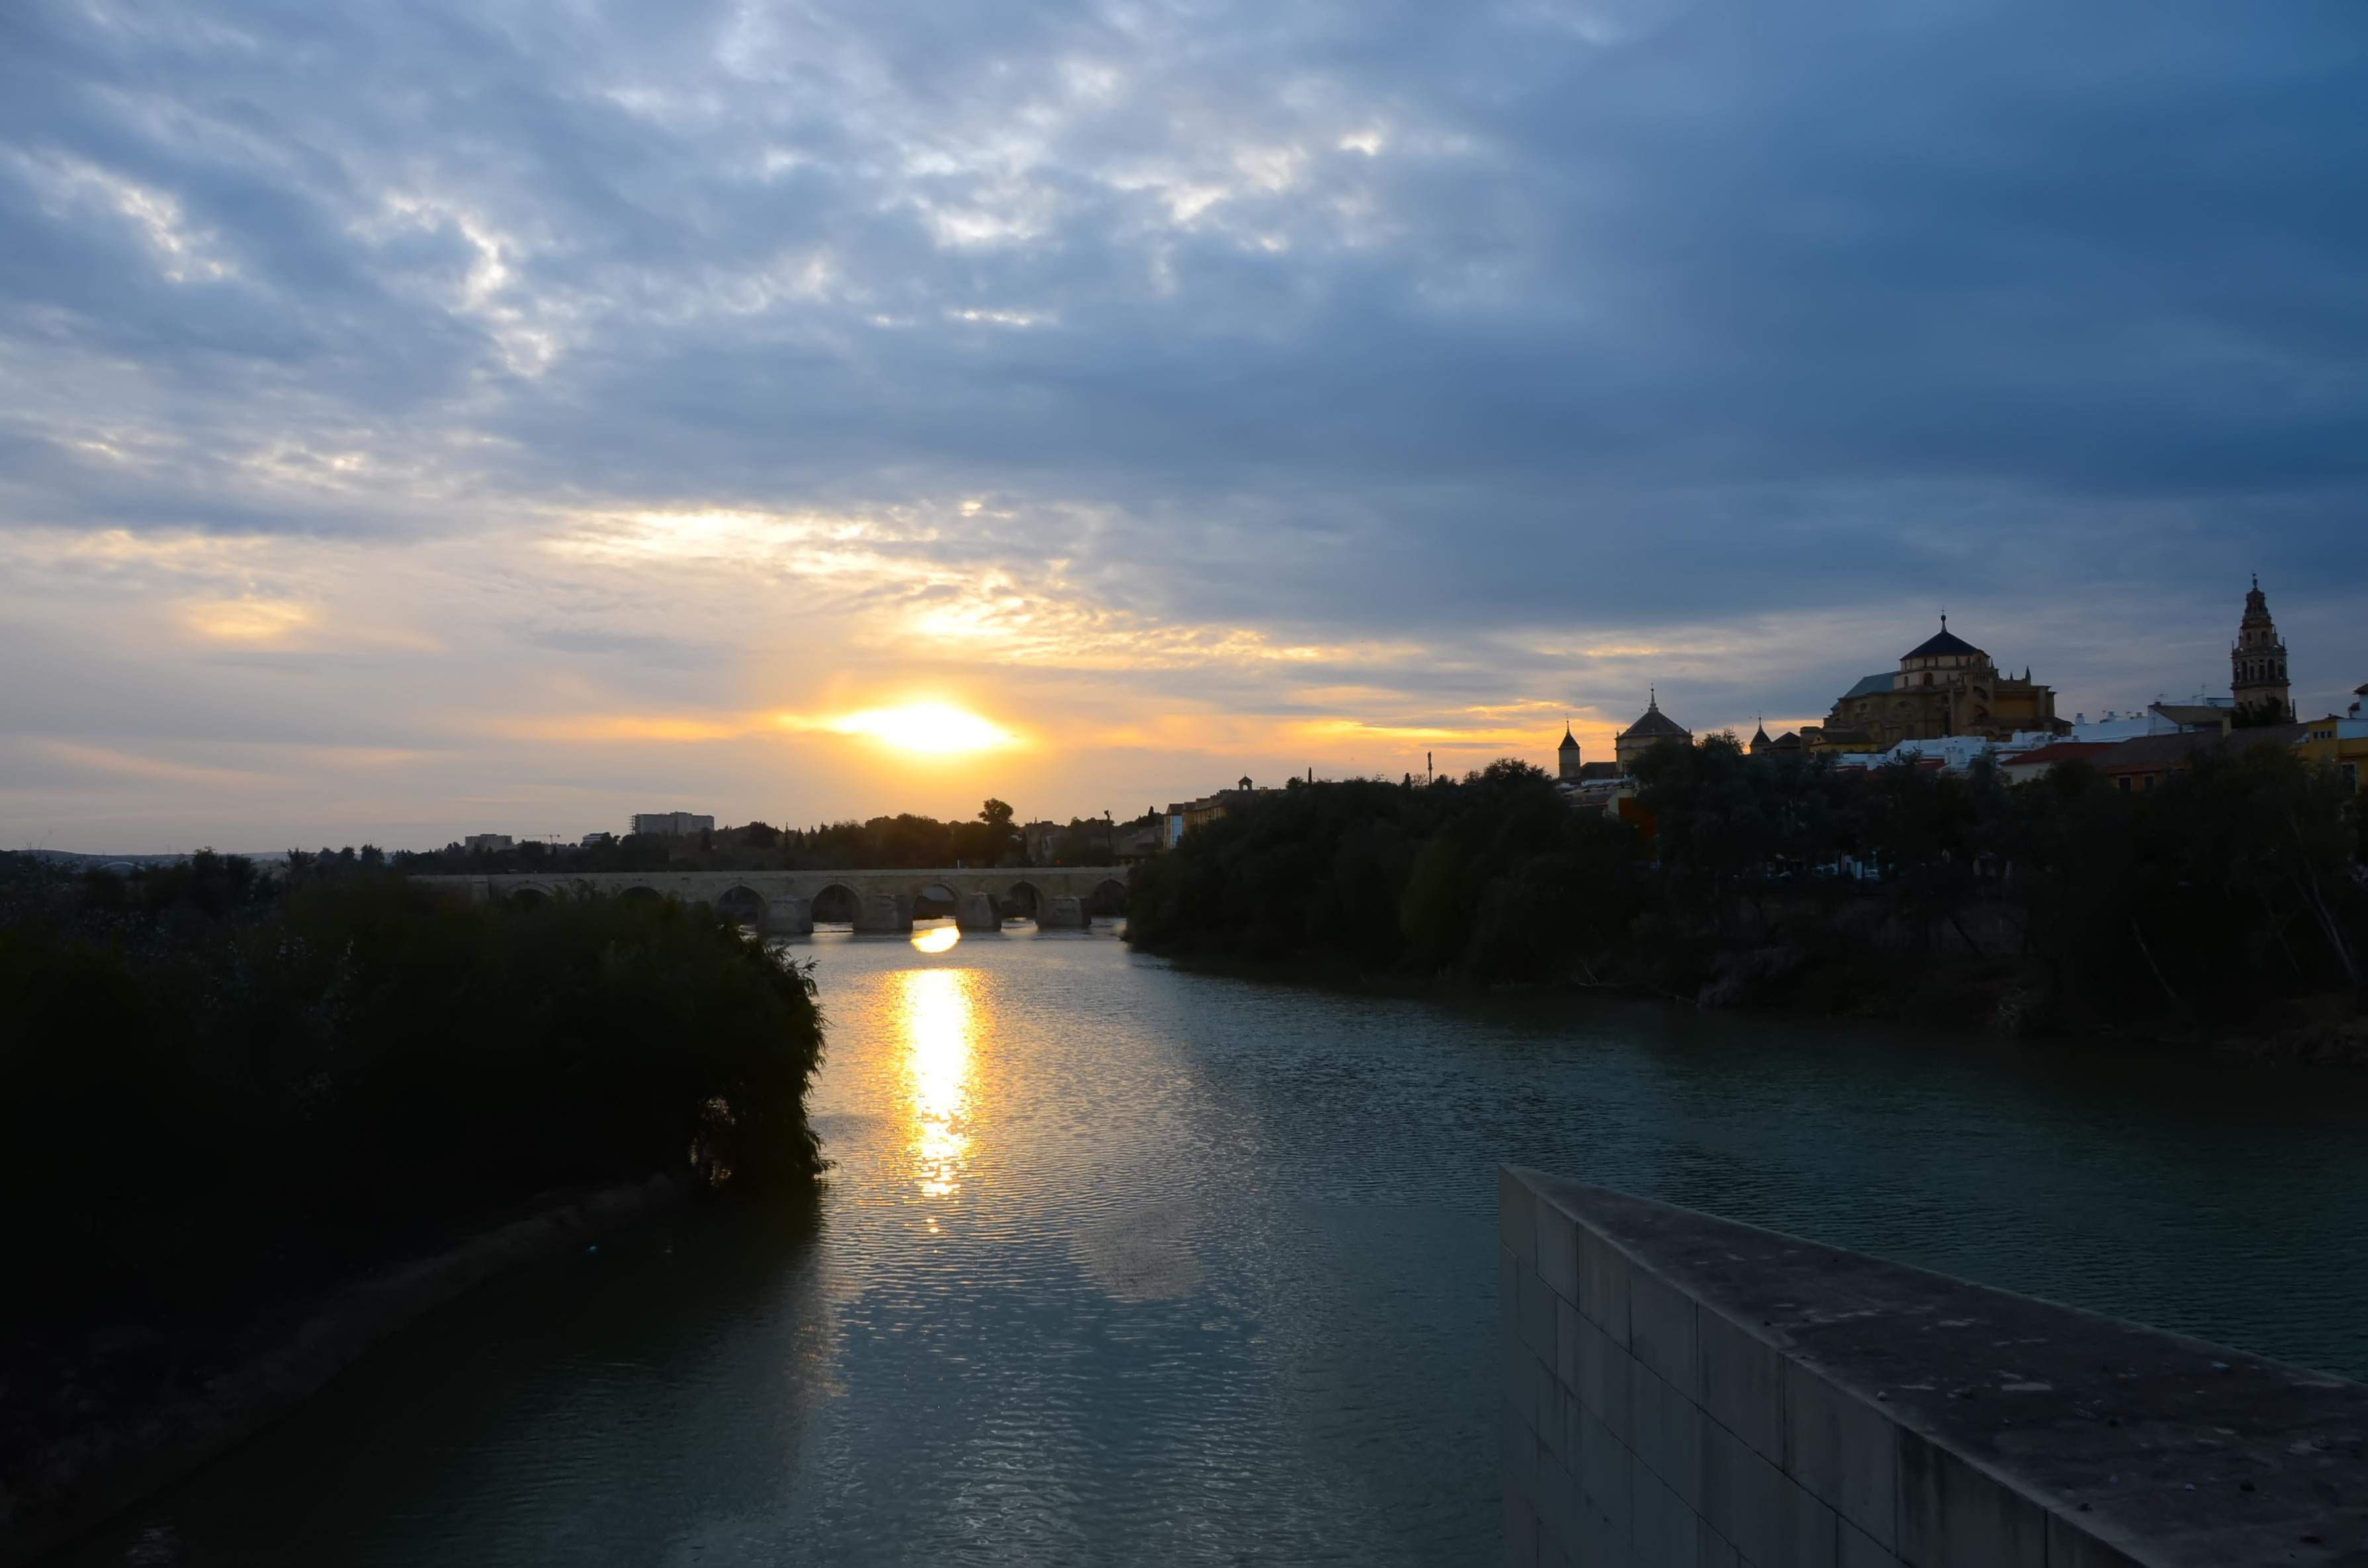 Sun in Roman Bridge of Córdoba